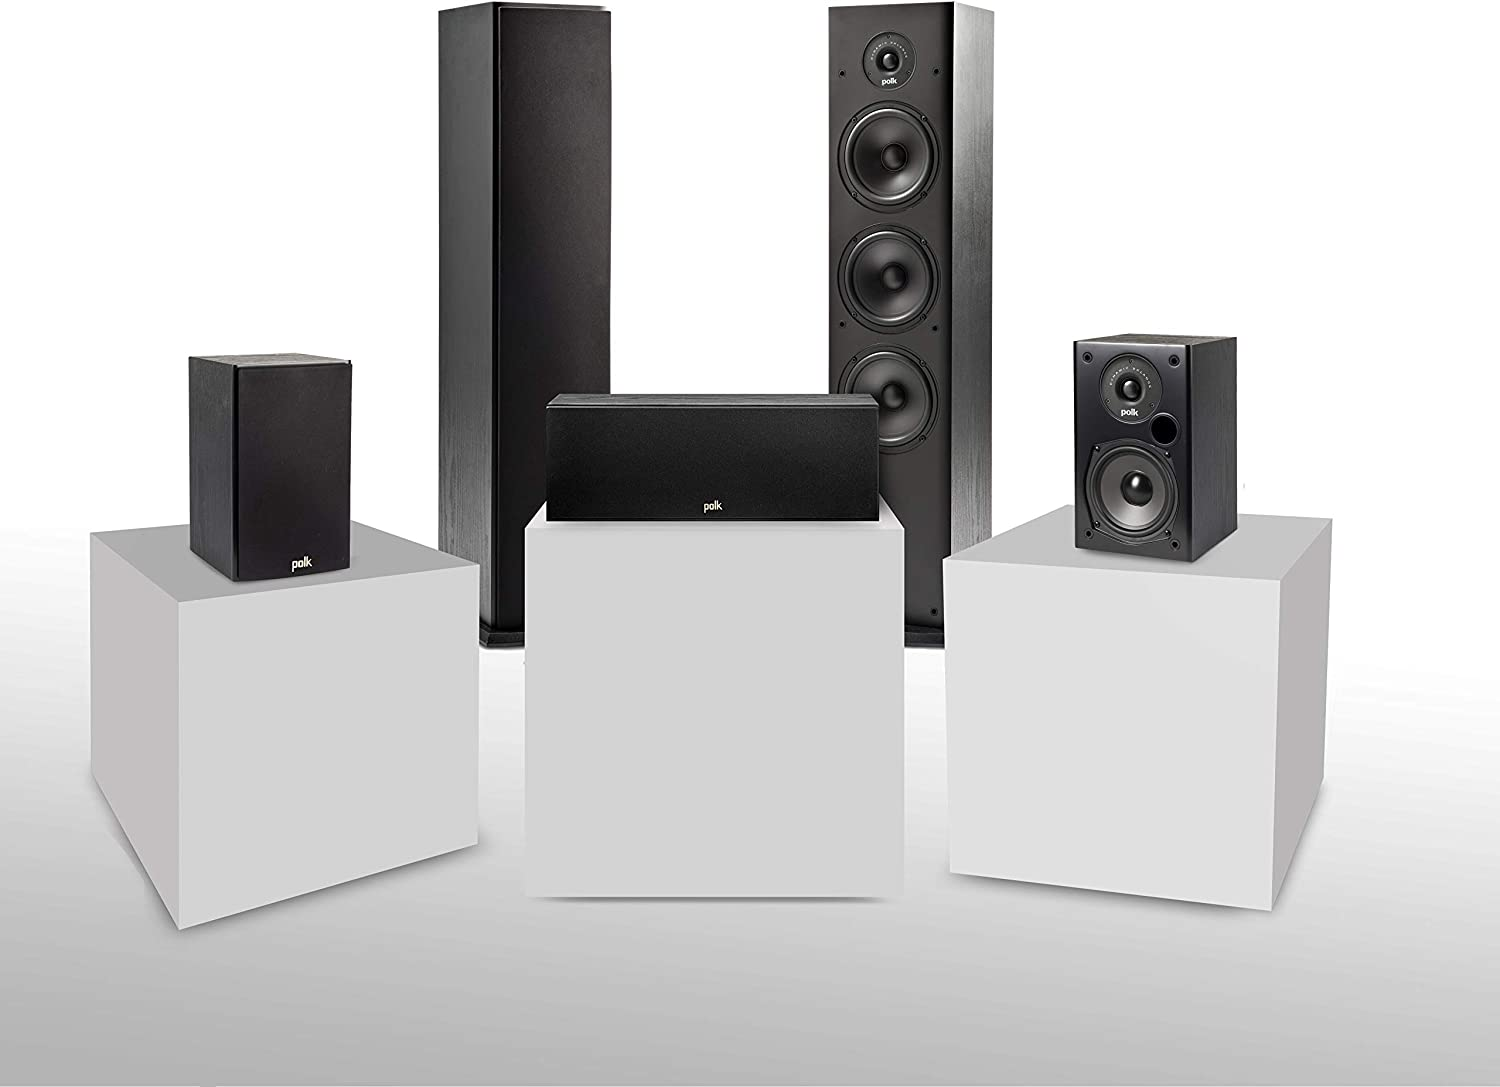 Polk Audio T Series 5 Channel Home Theater Bundle | Includes Two (2) T15 Bookshelf, One (1) T30 Center Channel & Two (2) T50 Tower Speakers | Premium Sound at a Great Value | Dolby and DTS Surround